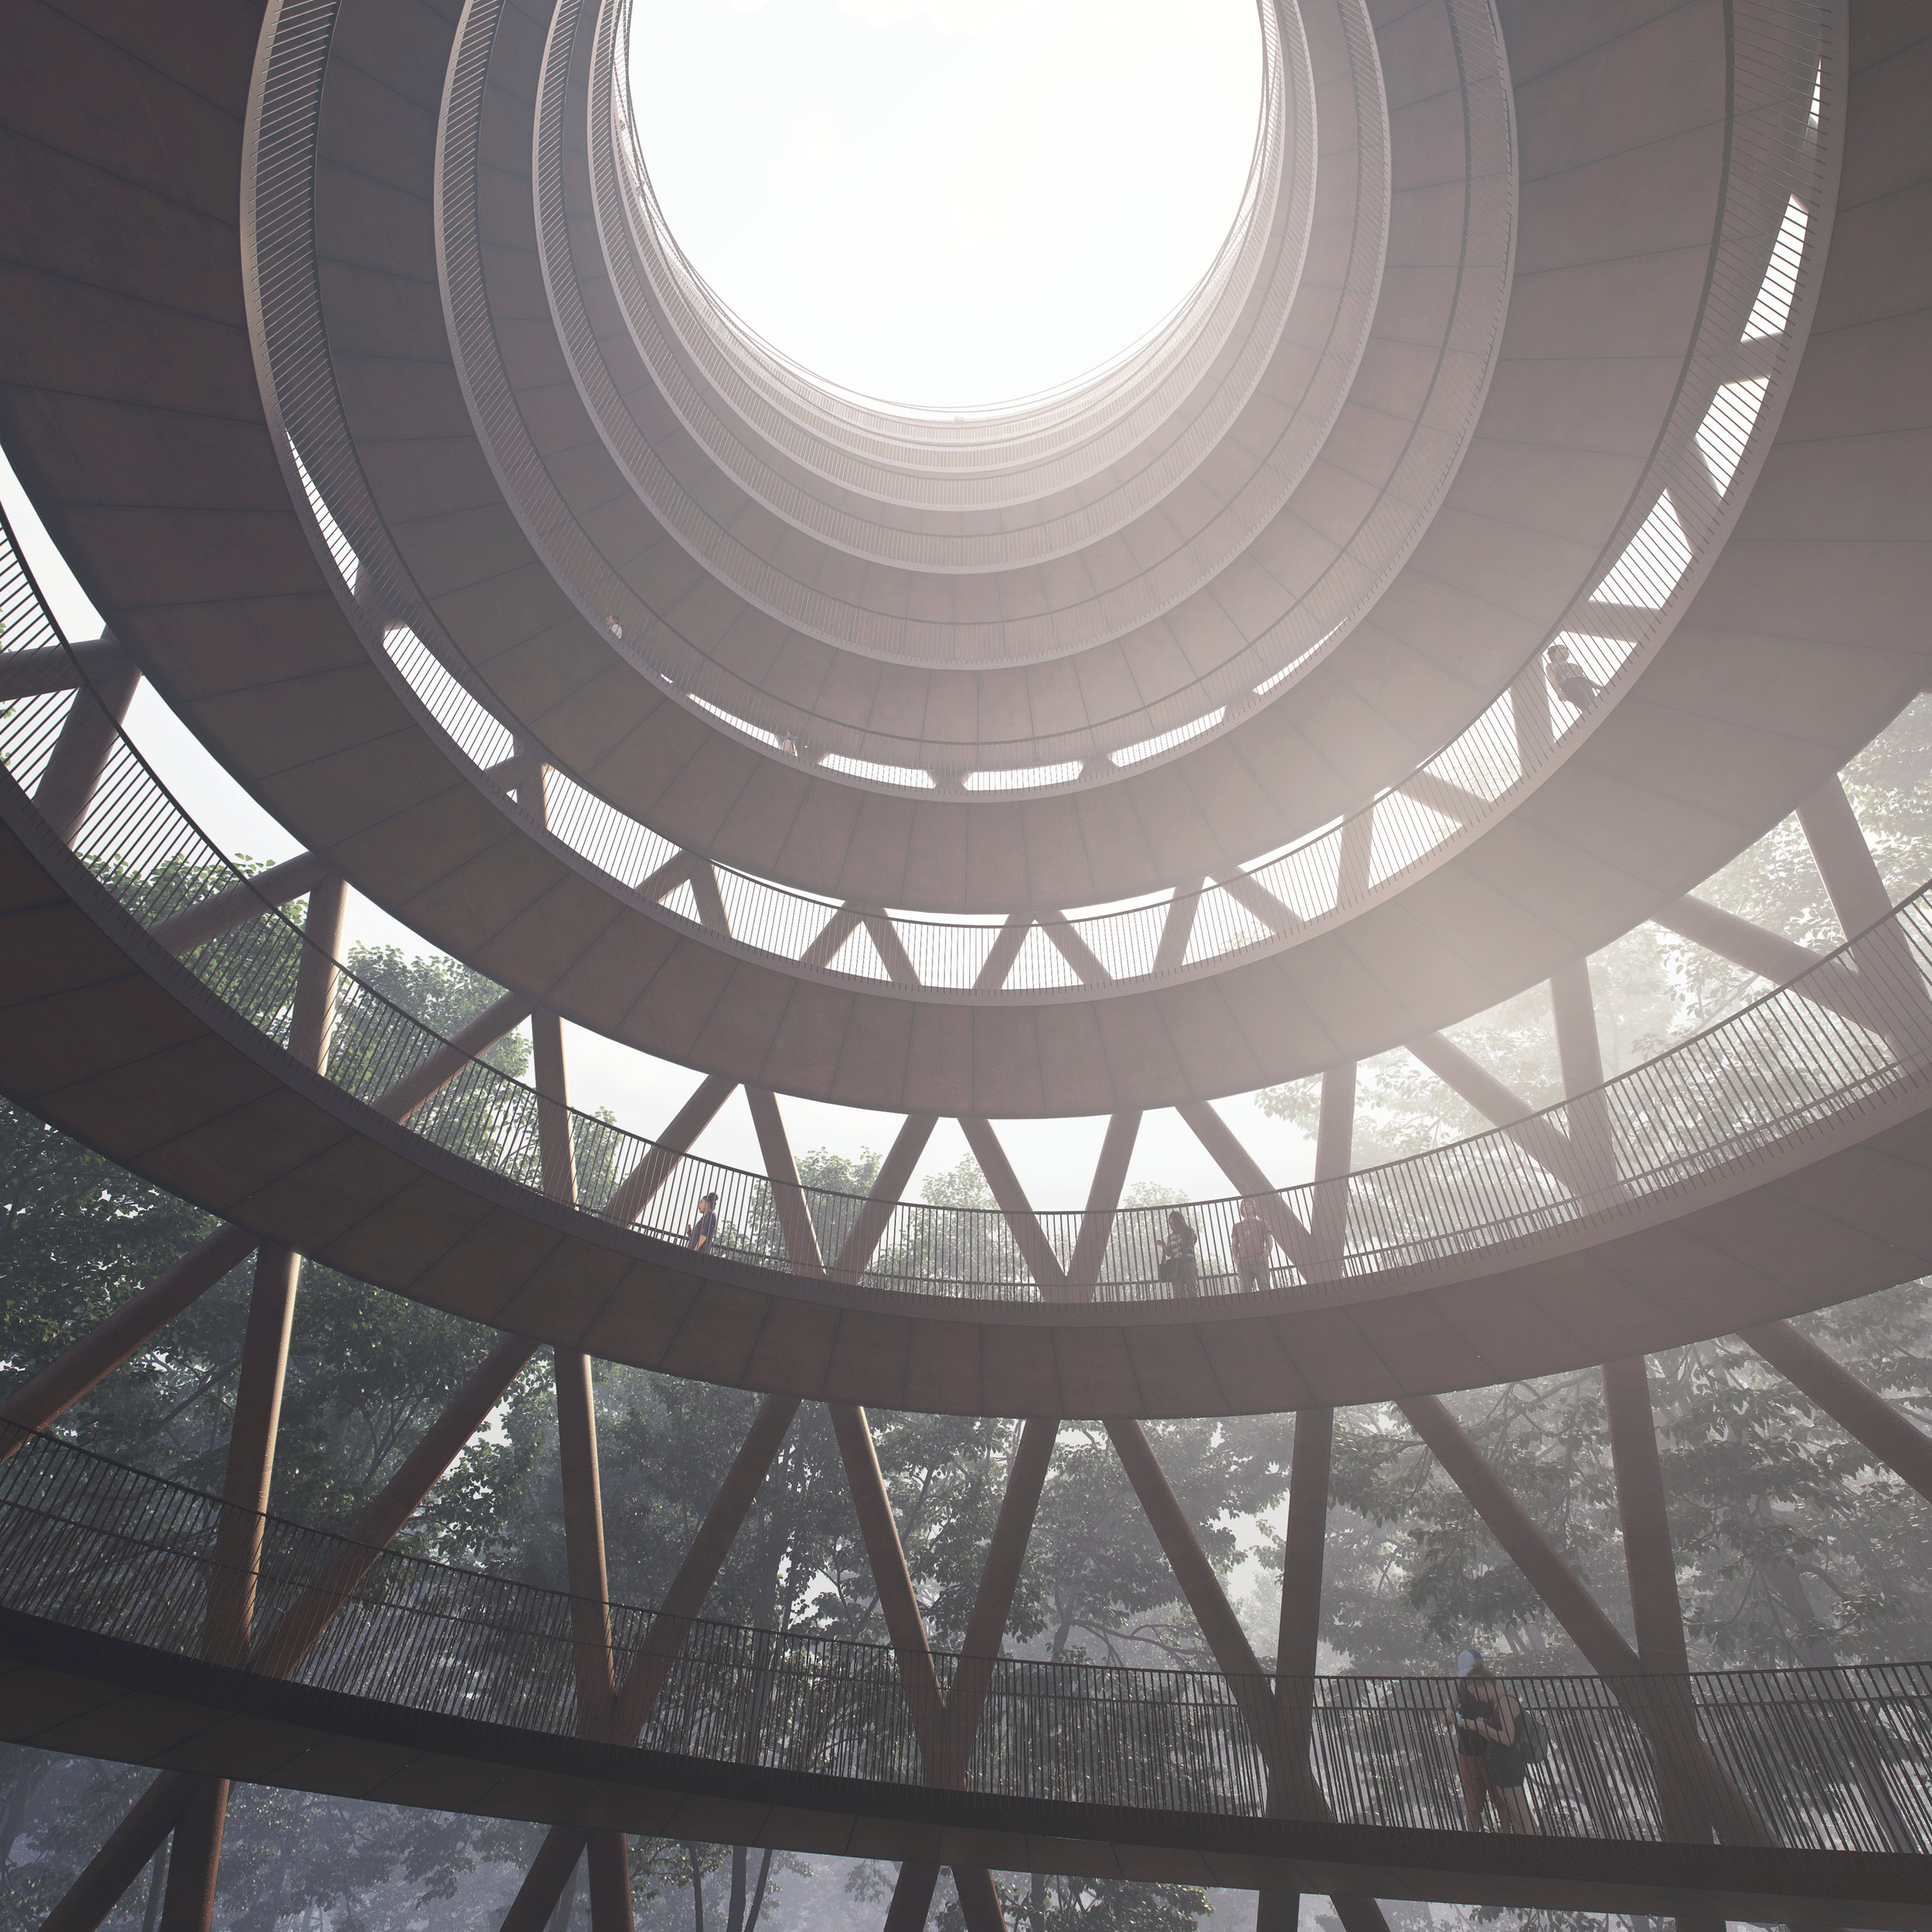 View of the central space of the observation tower